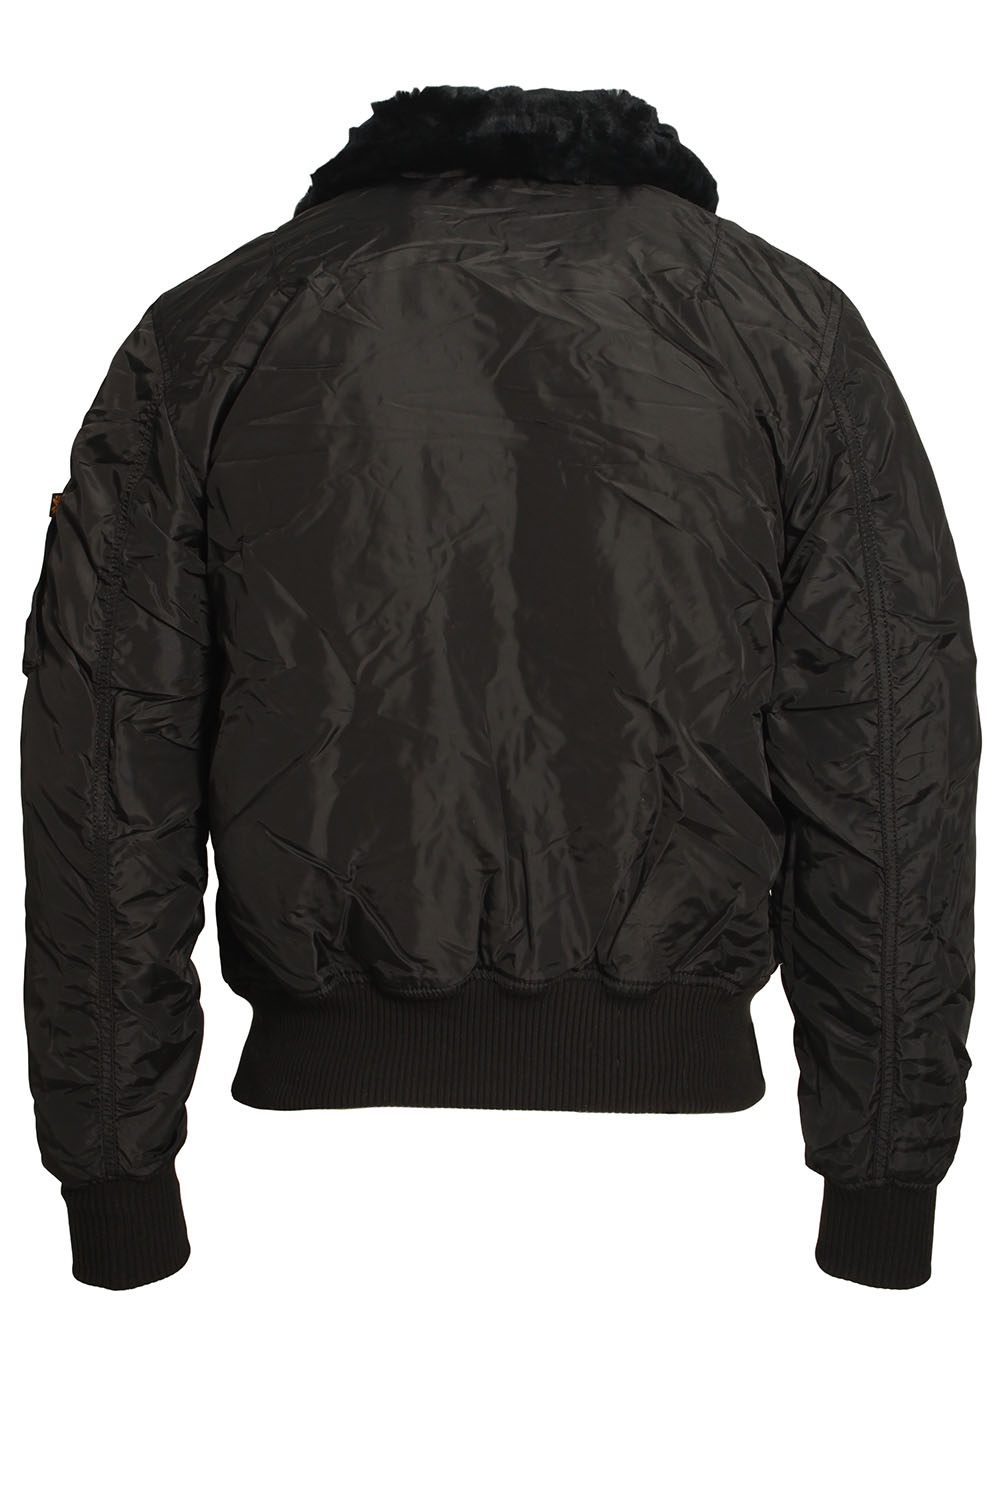 alpha industries injector iii flight jacket black shop alpha jackets. Black Bedroom Furniture Sets. Home Design Ideas